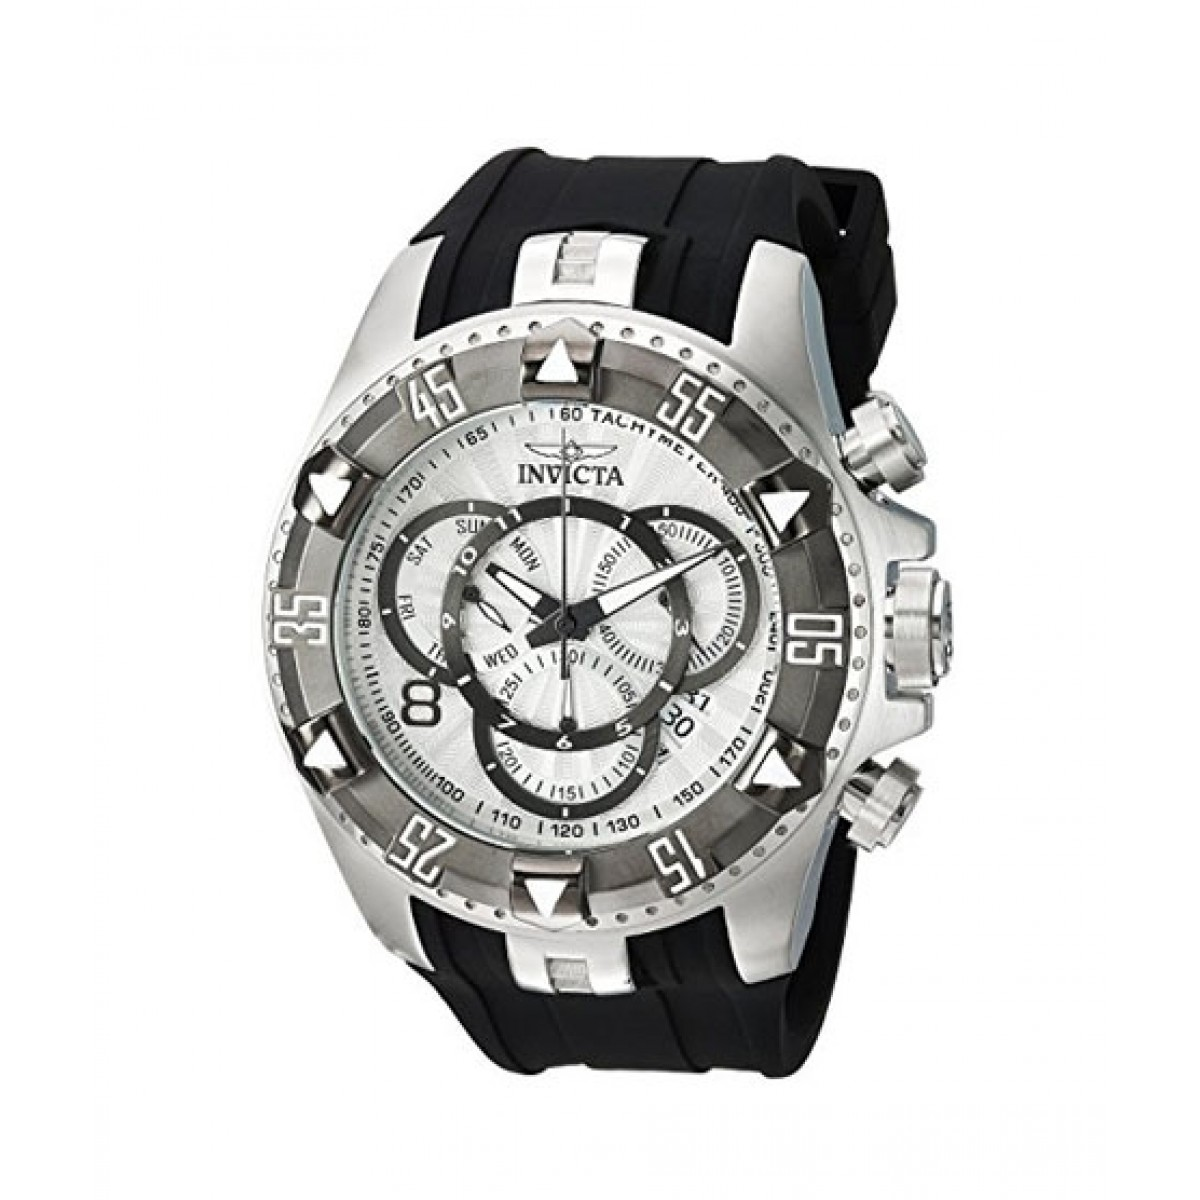 Invicta Excursion Men's Watch Black (24272)